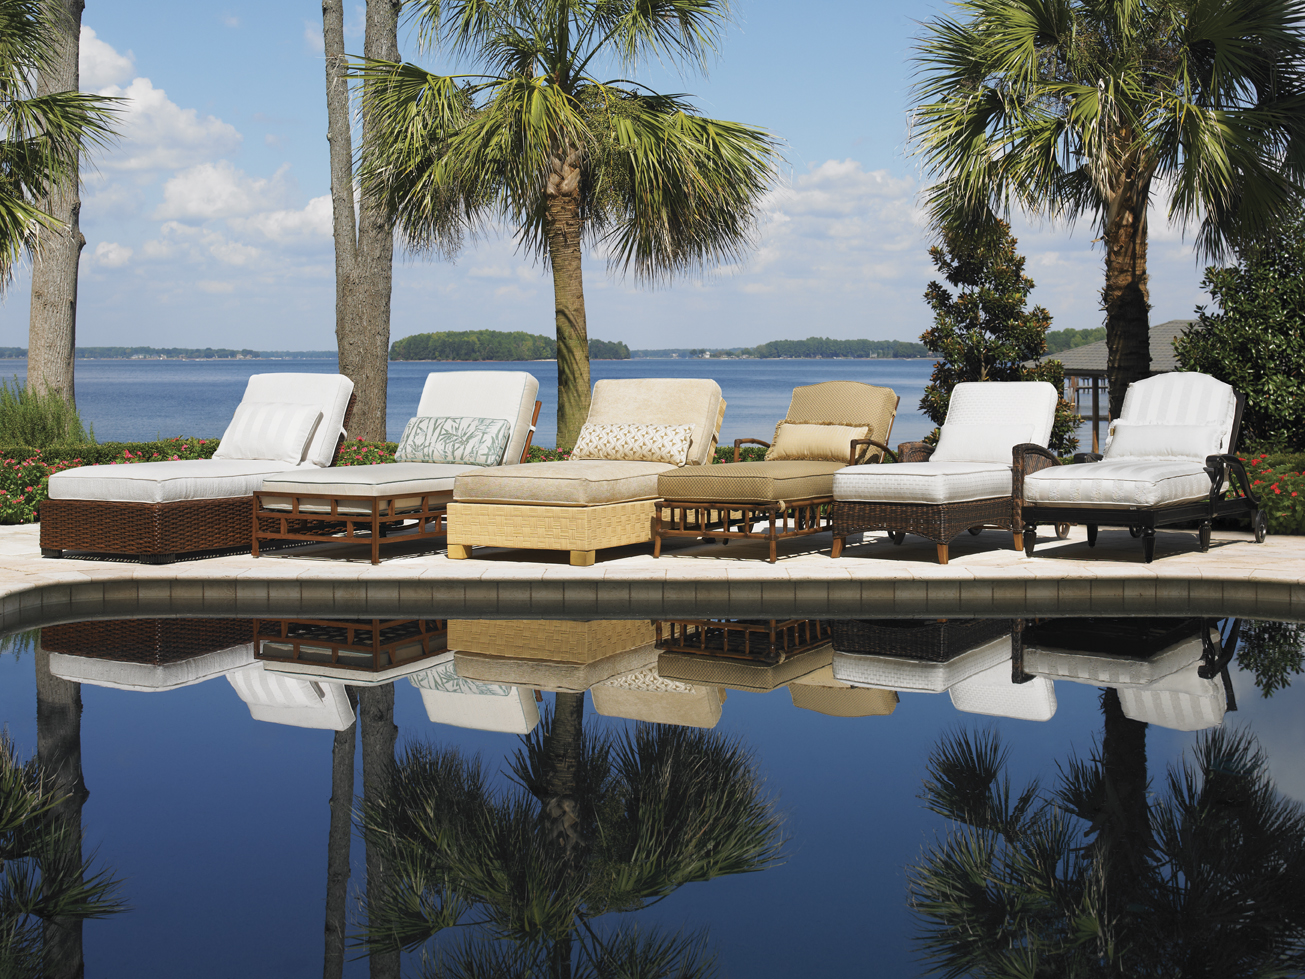 Tommy Bahama Outdoor - Tommy Bahama Outdoor Furniture Interior Design Center Of St. Louis, MO